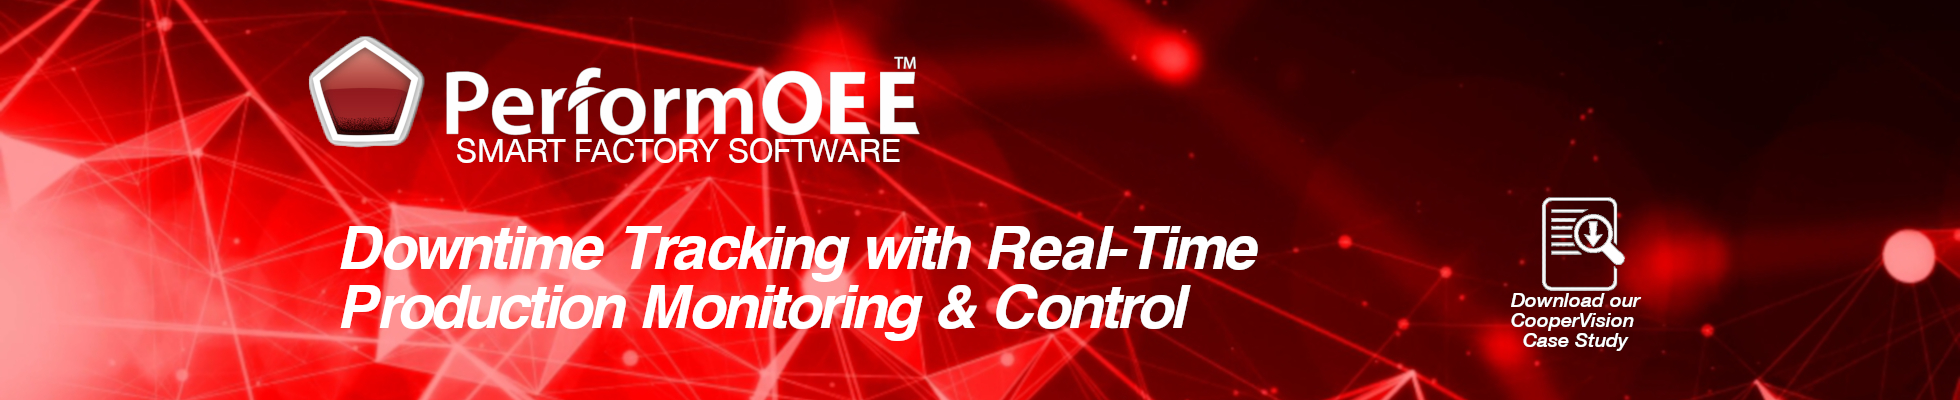 Real-Time Production Monitoring and Control